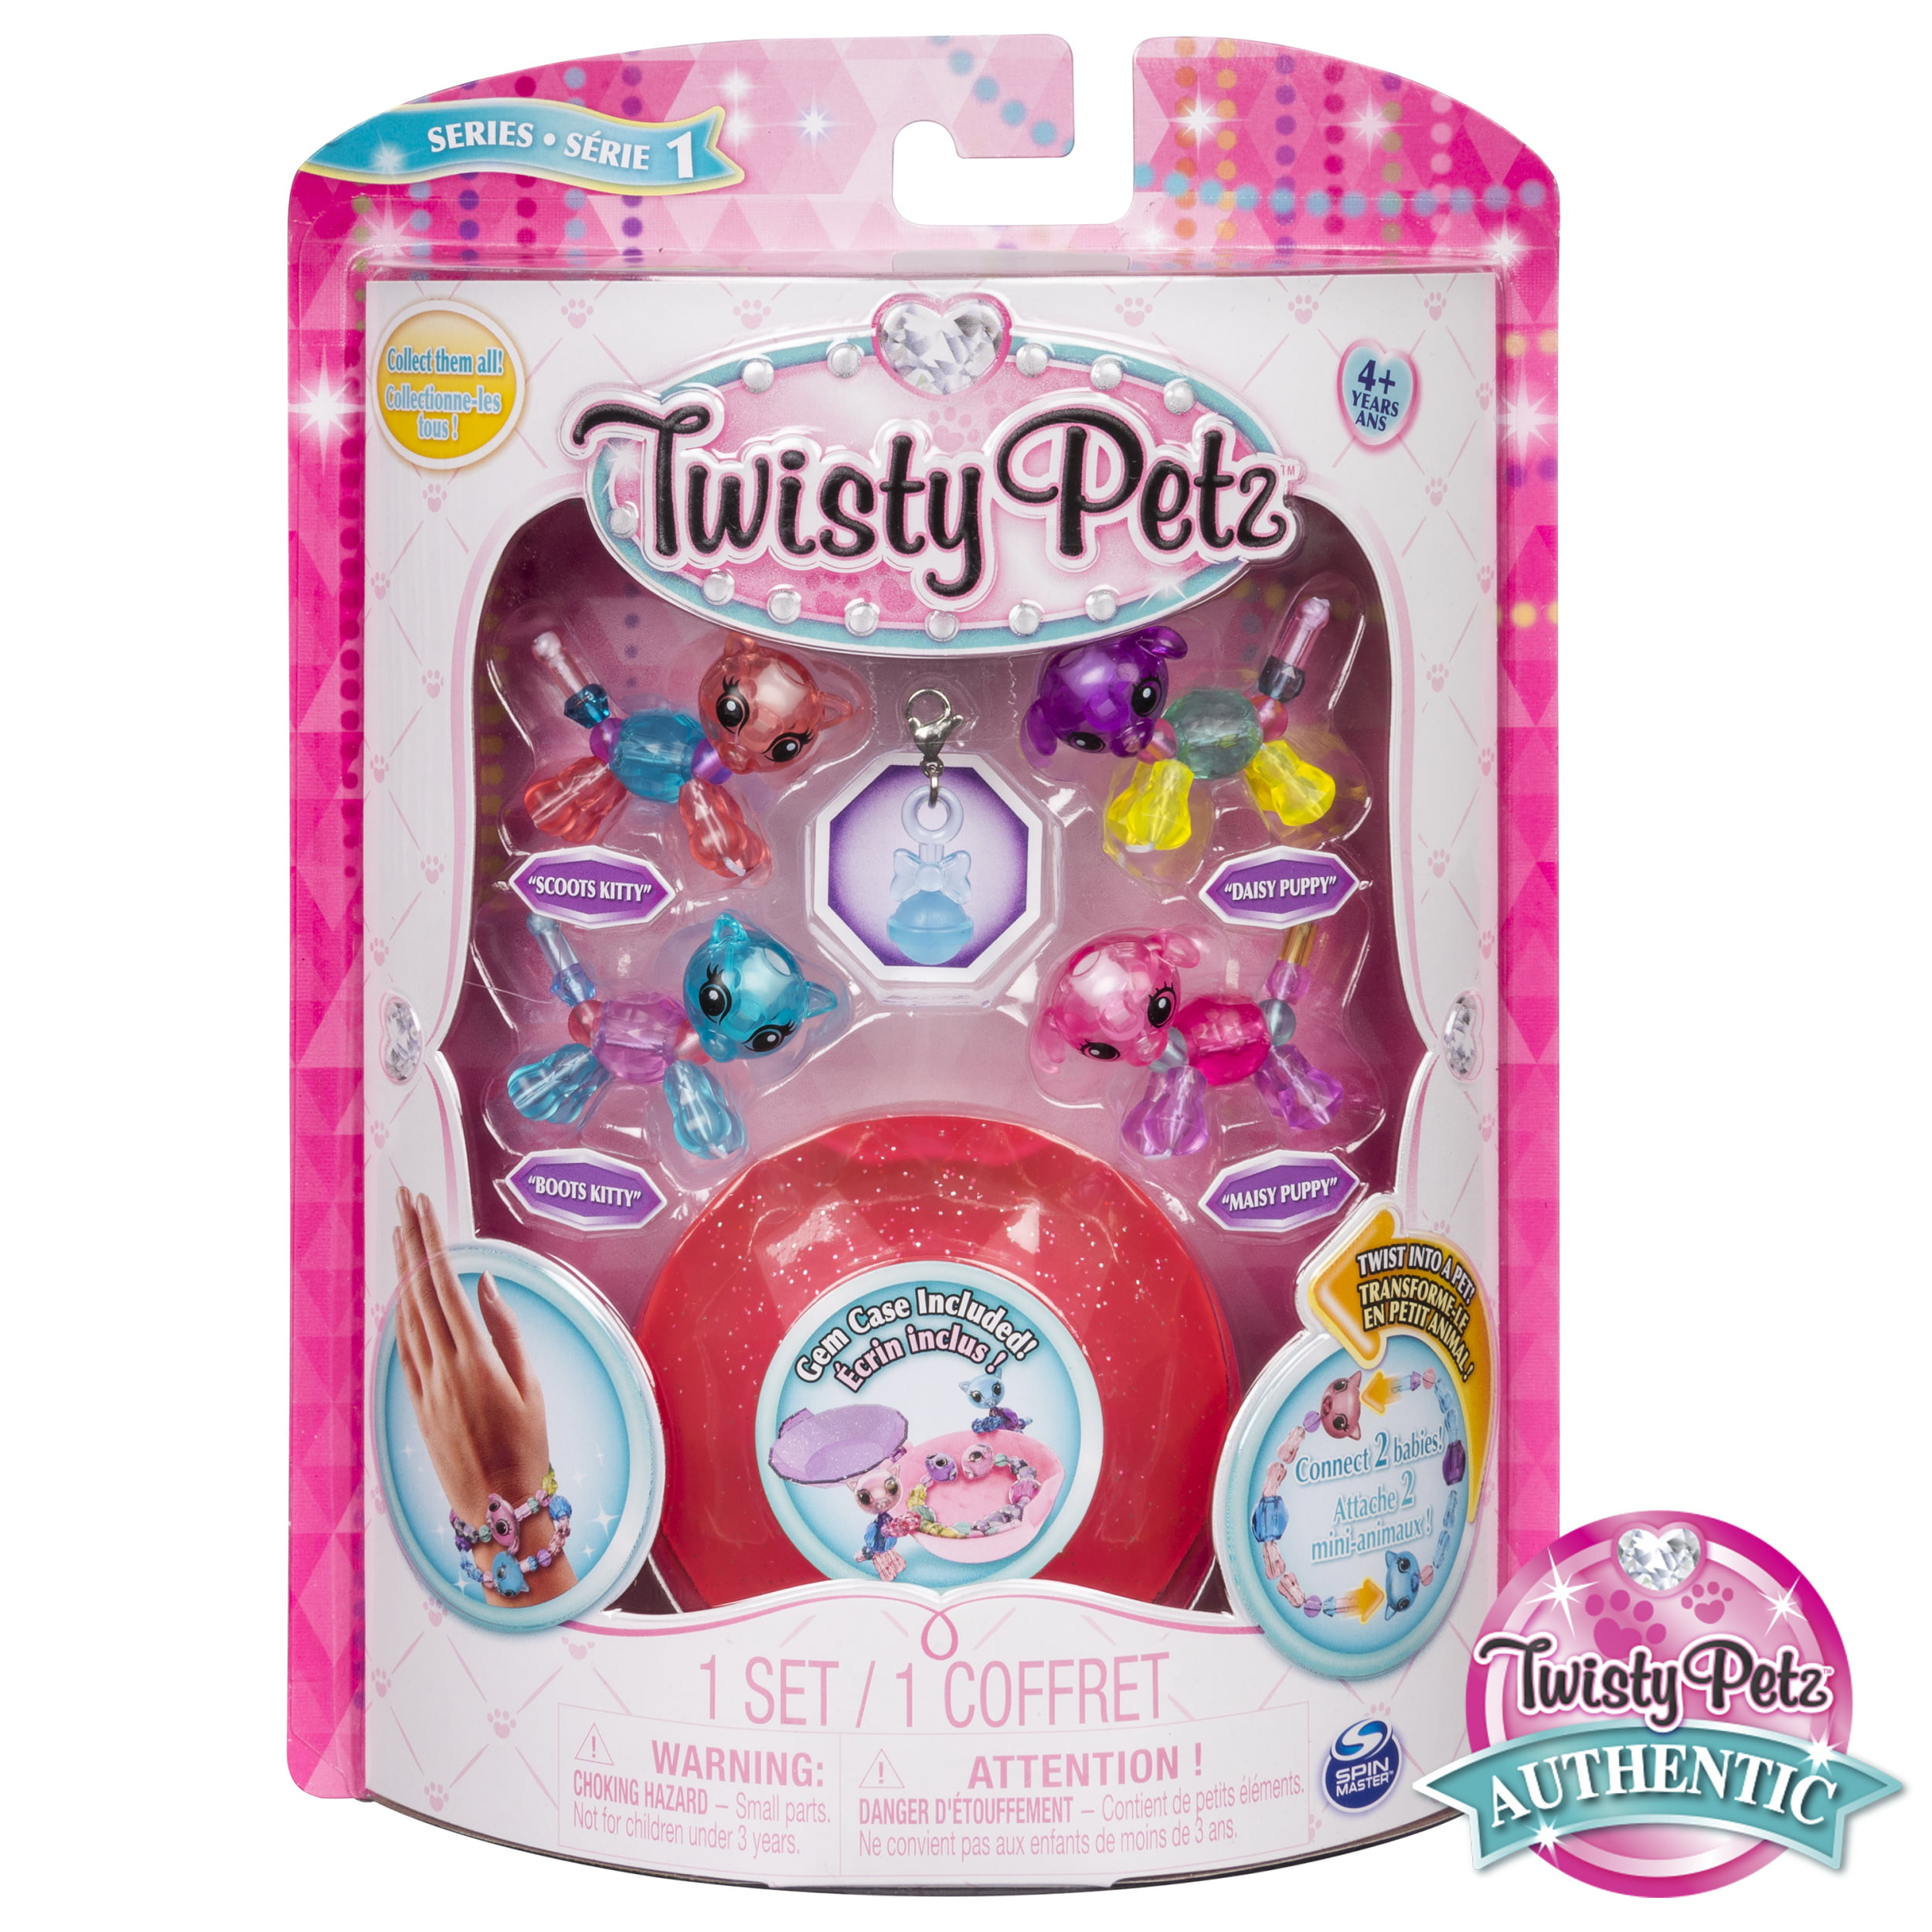 Babies 4-Pack Kitties and Puppies Collectible Bracelet Set for Kid Twisty Petz